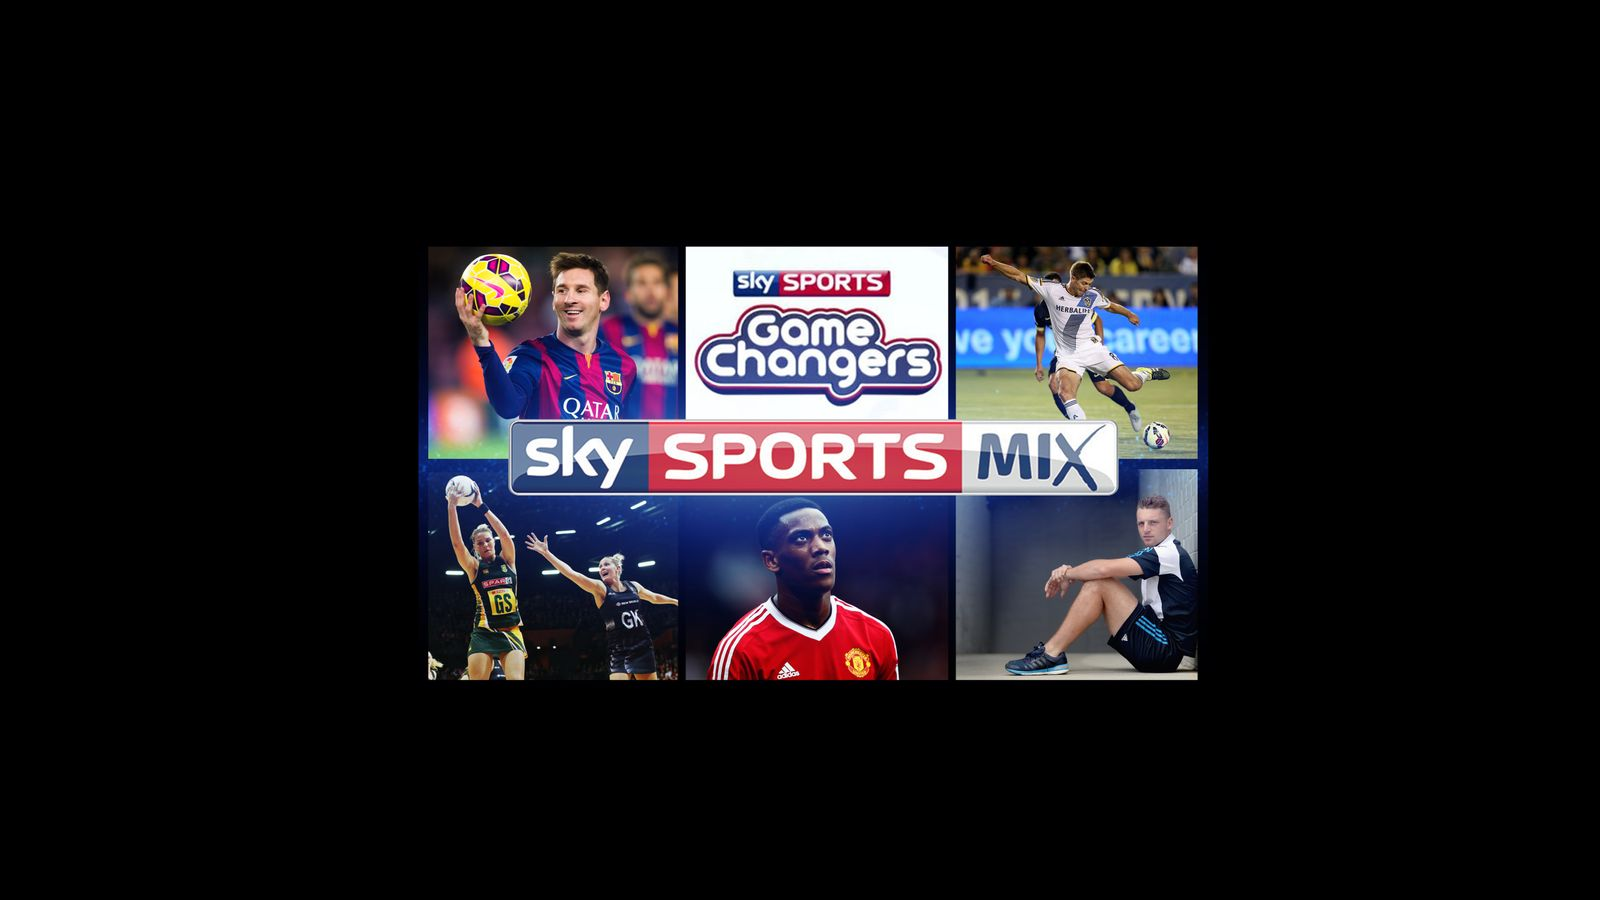 Sky to launch brand new sports channel Sky Sports Mix